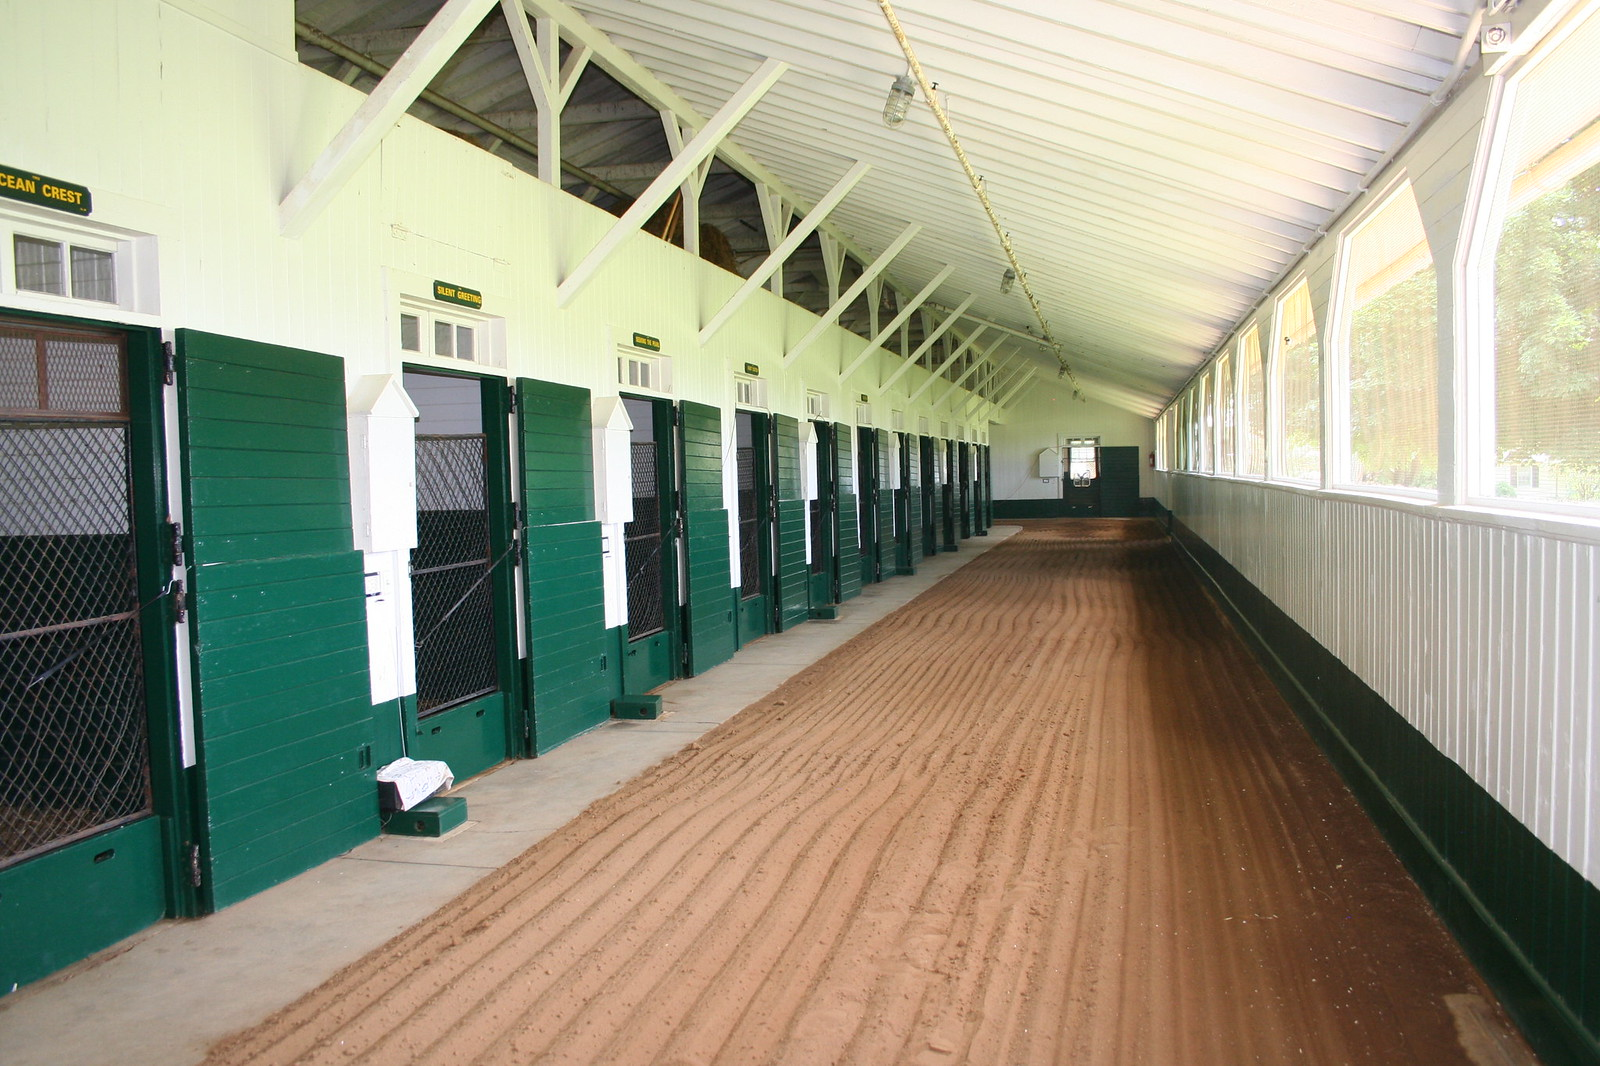 Stable Indoor This Indoor Stable With a